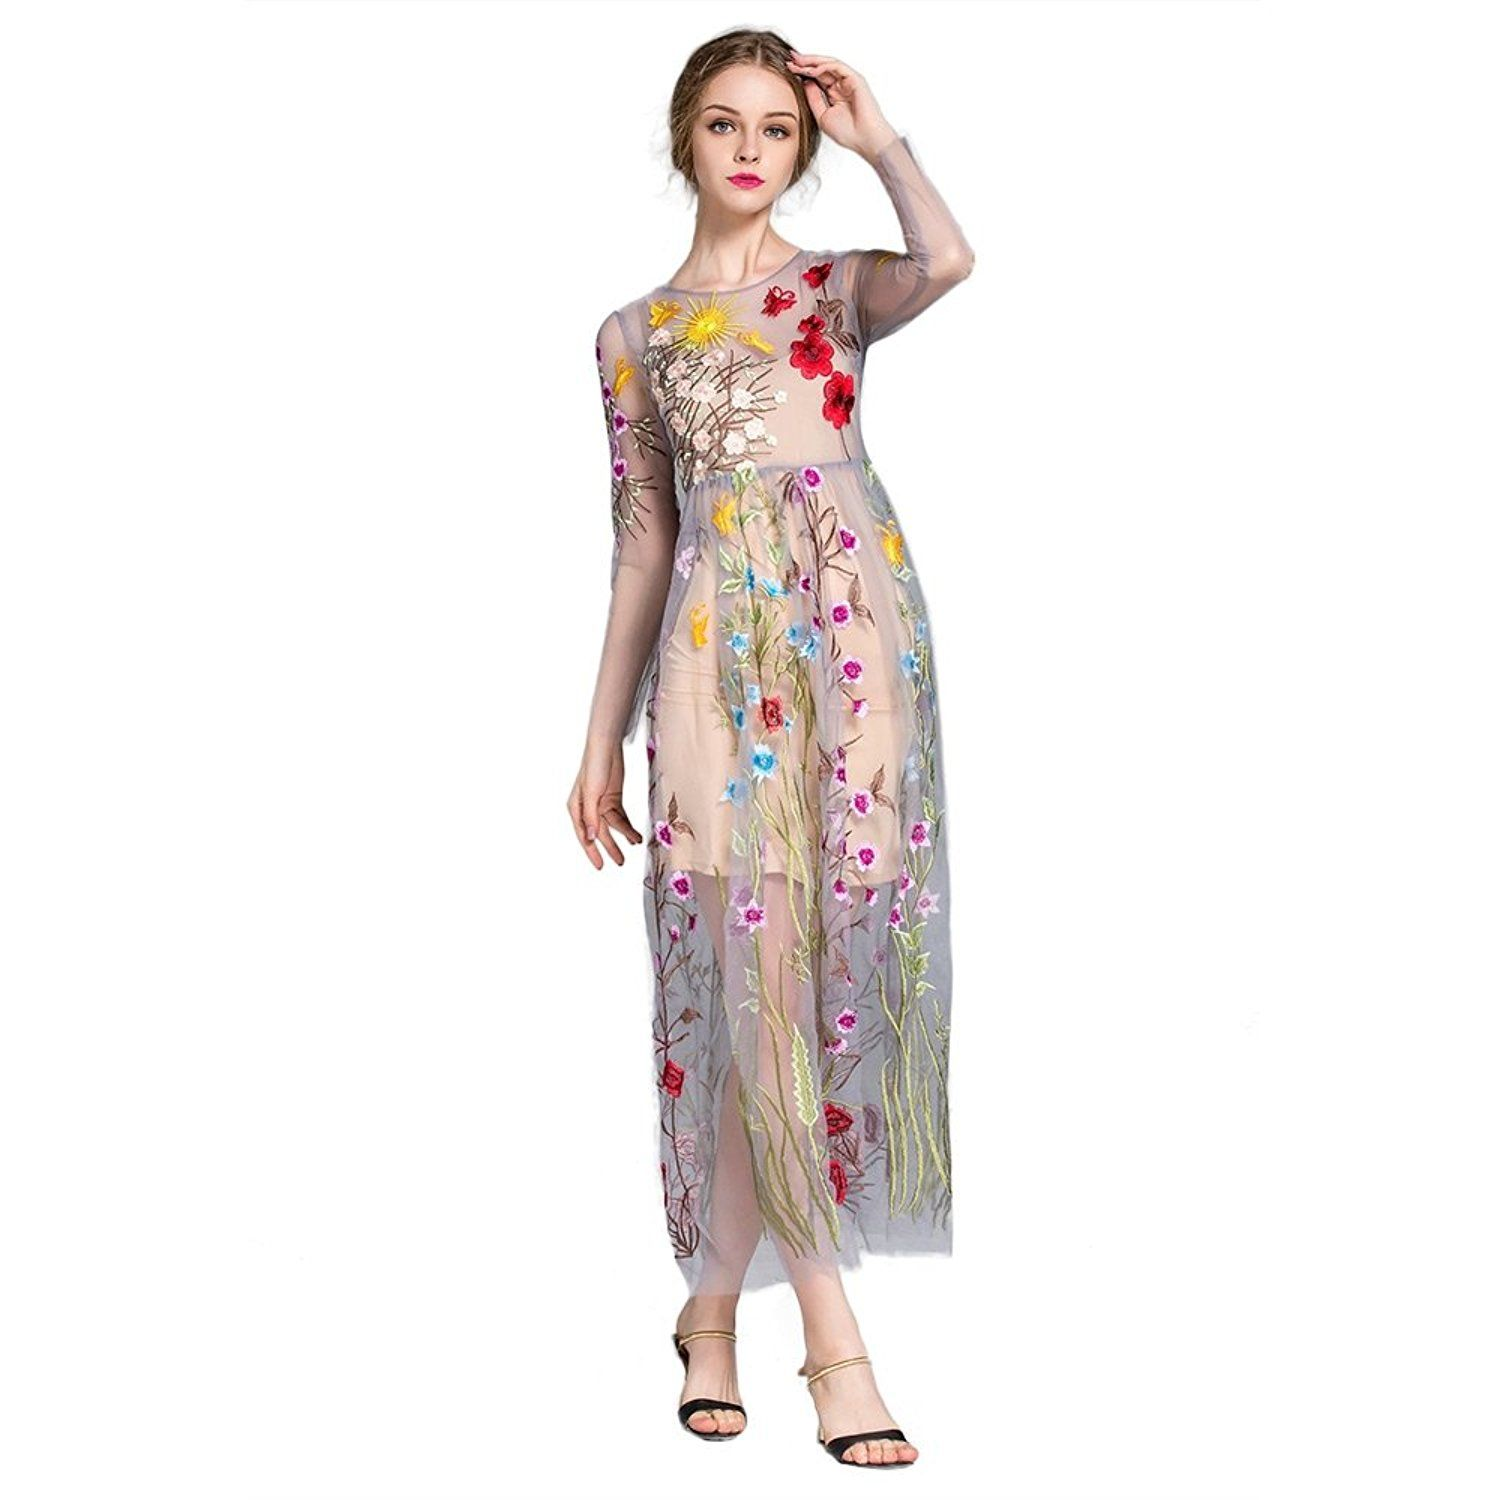 Dezzal womenus floral embroidered tulle prom maxi dress with cami